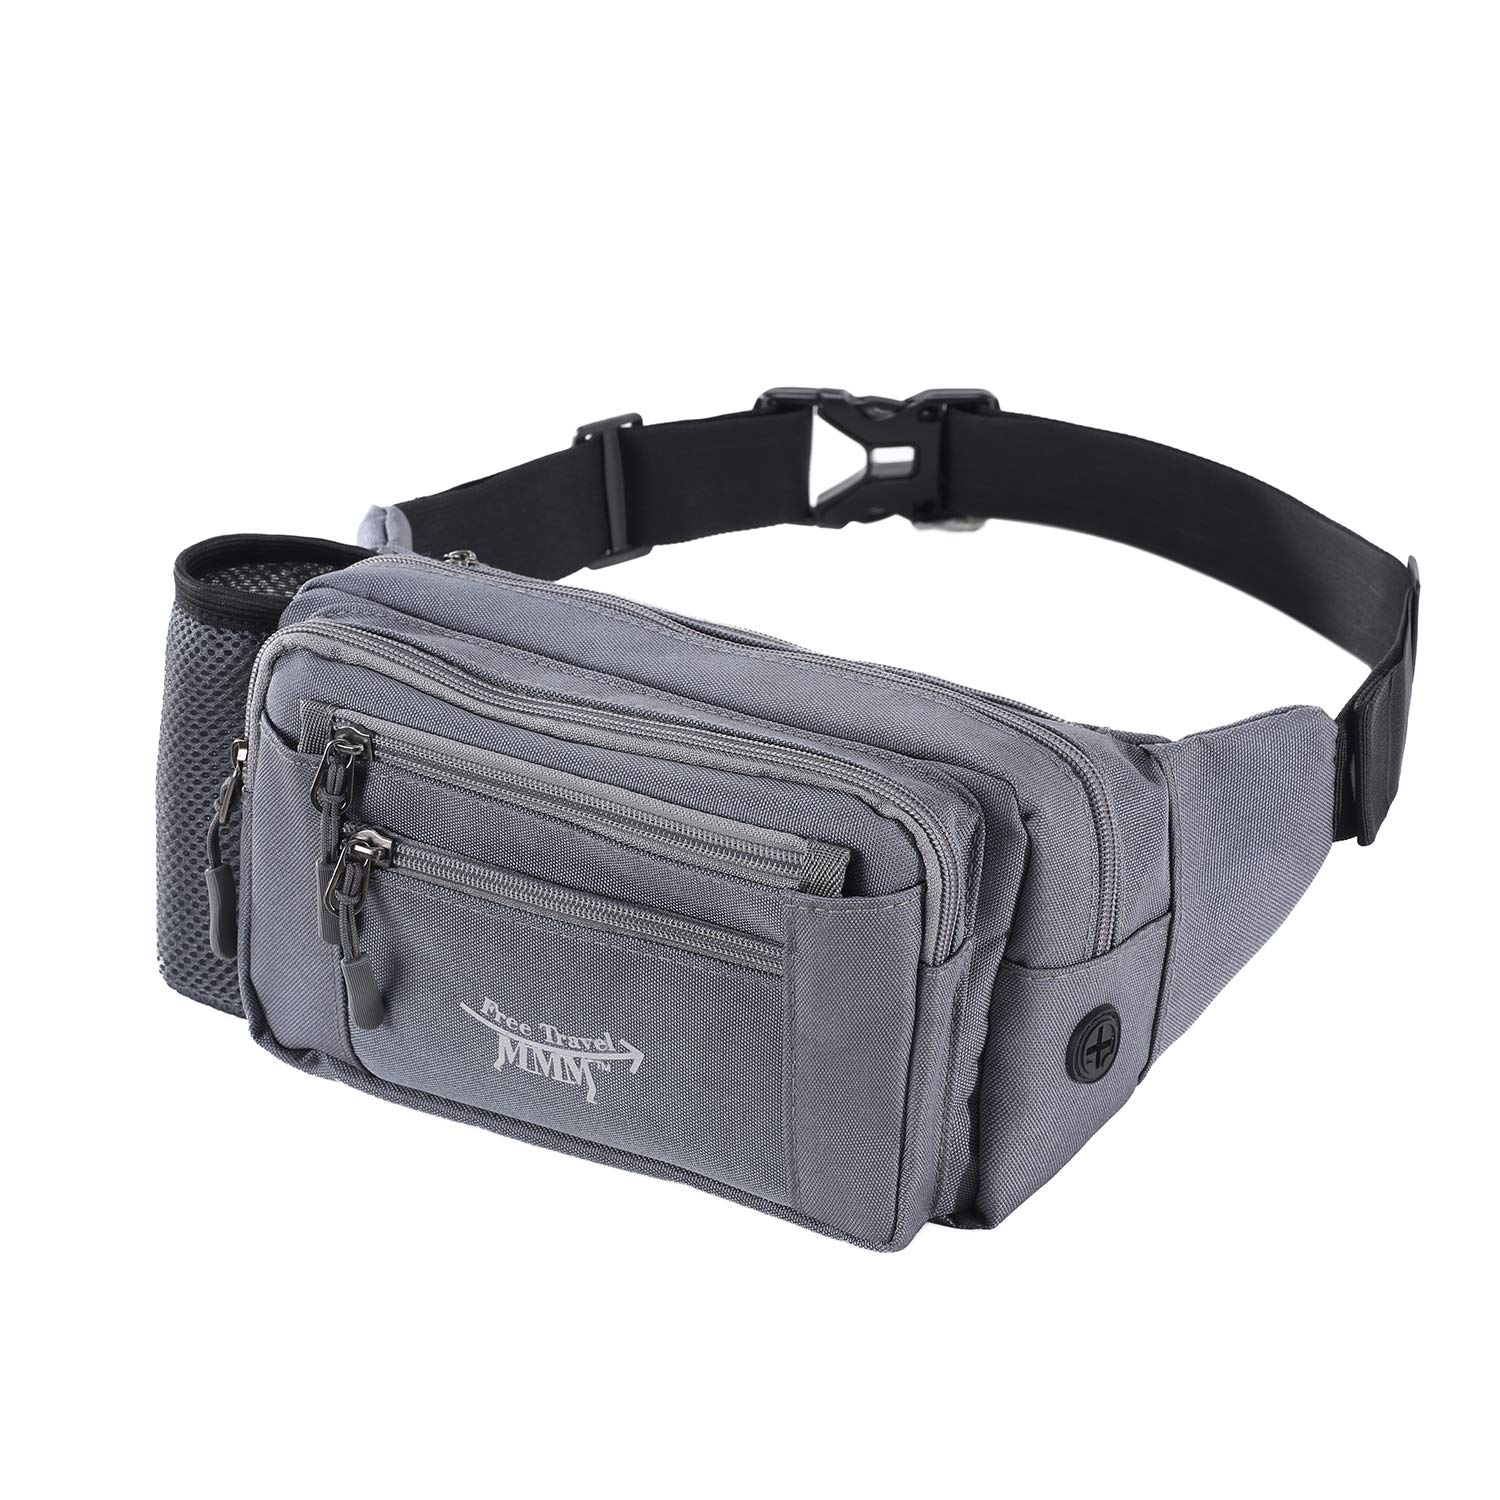 5cb612b96111 FTMMM Fanny Pack Running Waist Pack Bag for Men & Women with 1 Water Bottle  Holder Lumbar Pack Fashion Multi-Function with Headphone Jack for Outdoors  ...